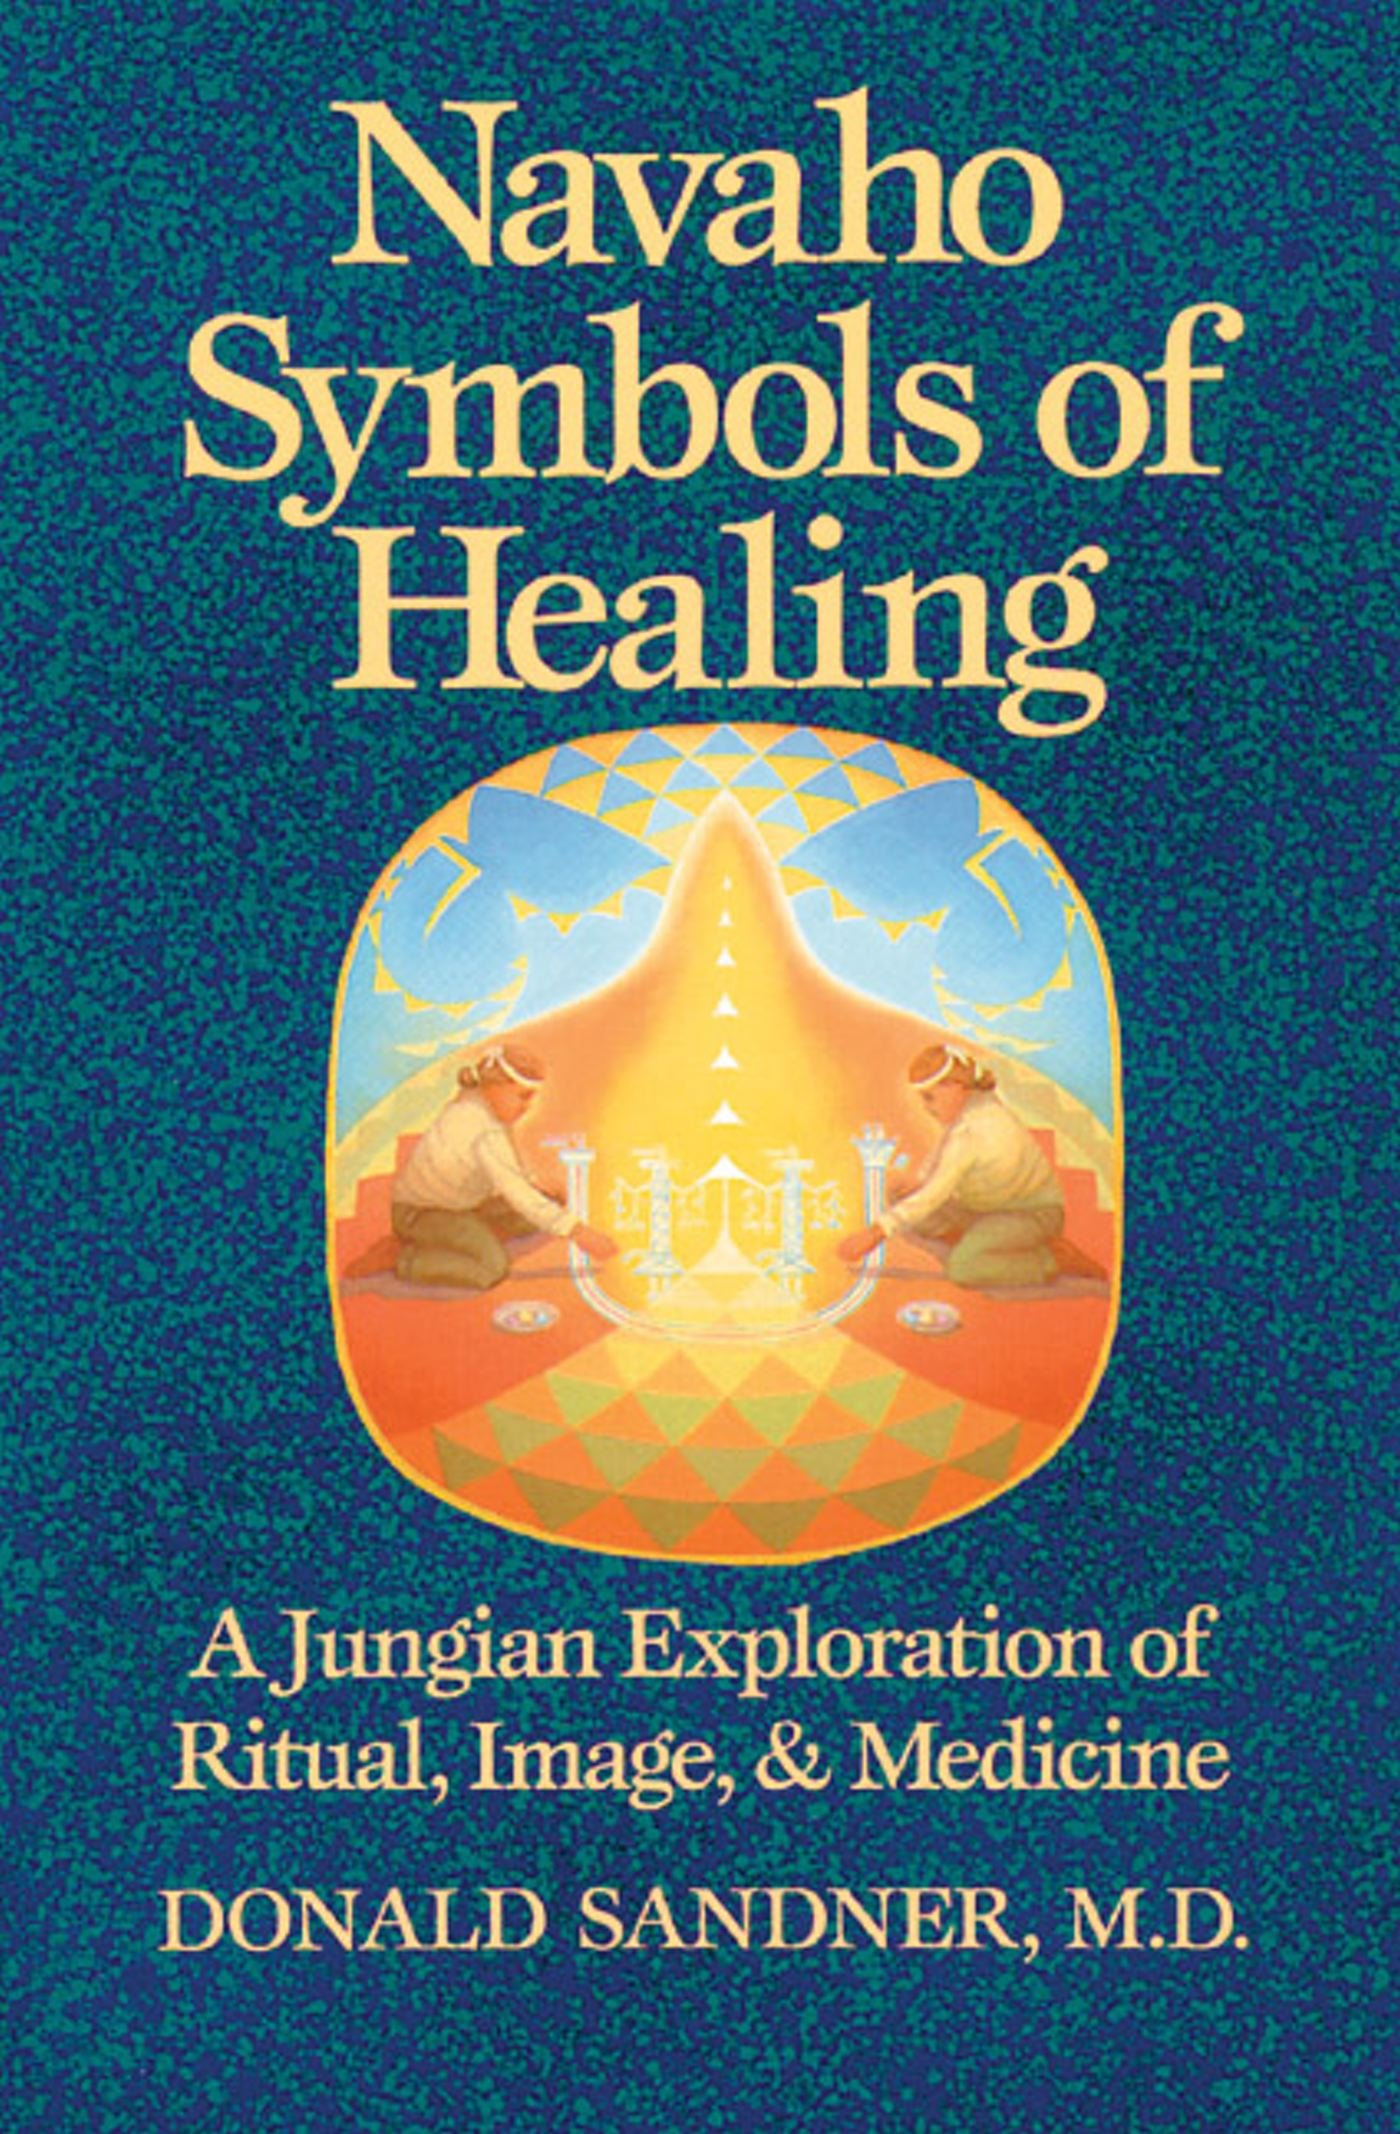 Navaho Symbols of Healing: A Jungian Exploration of Ritual, Image, and Medicine por Donald Sandner